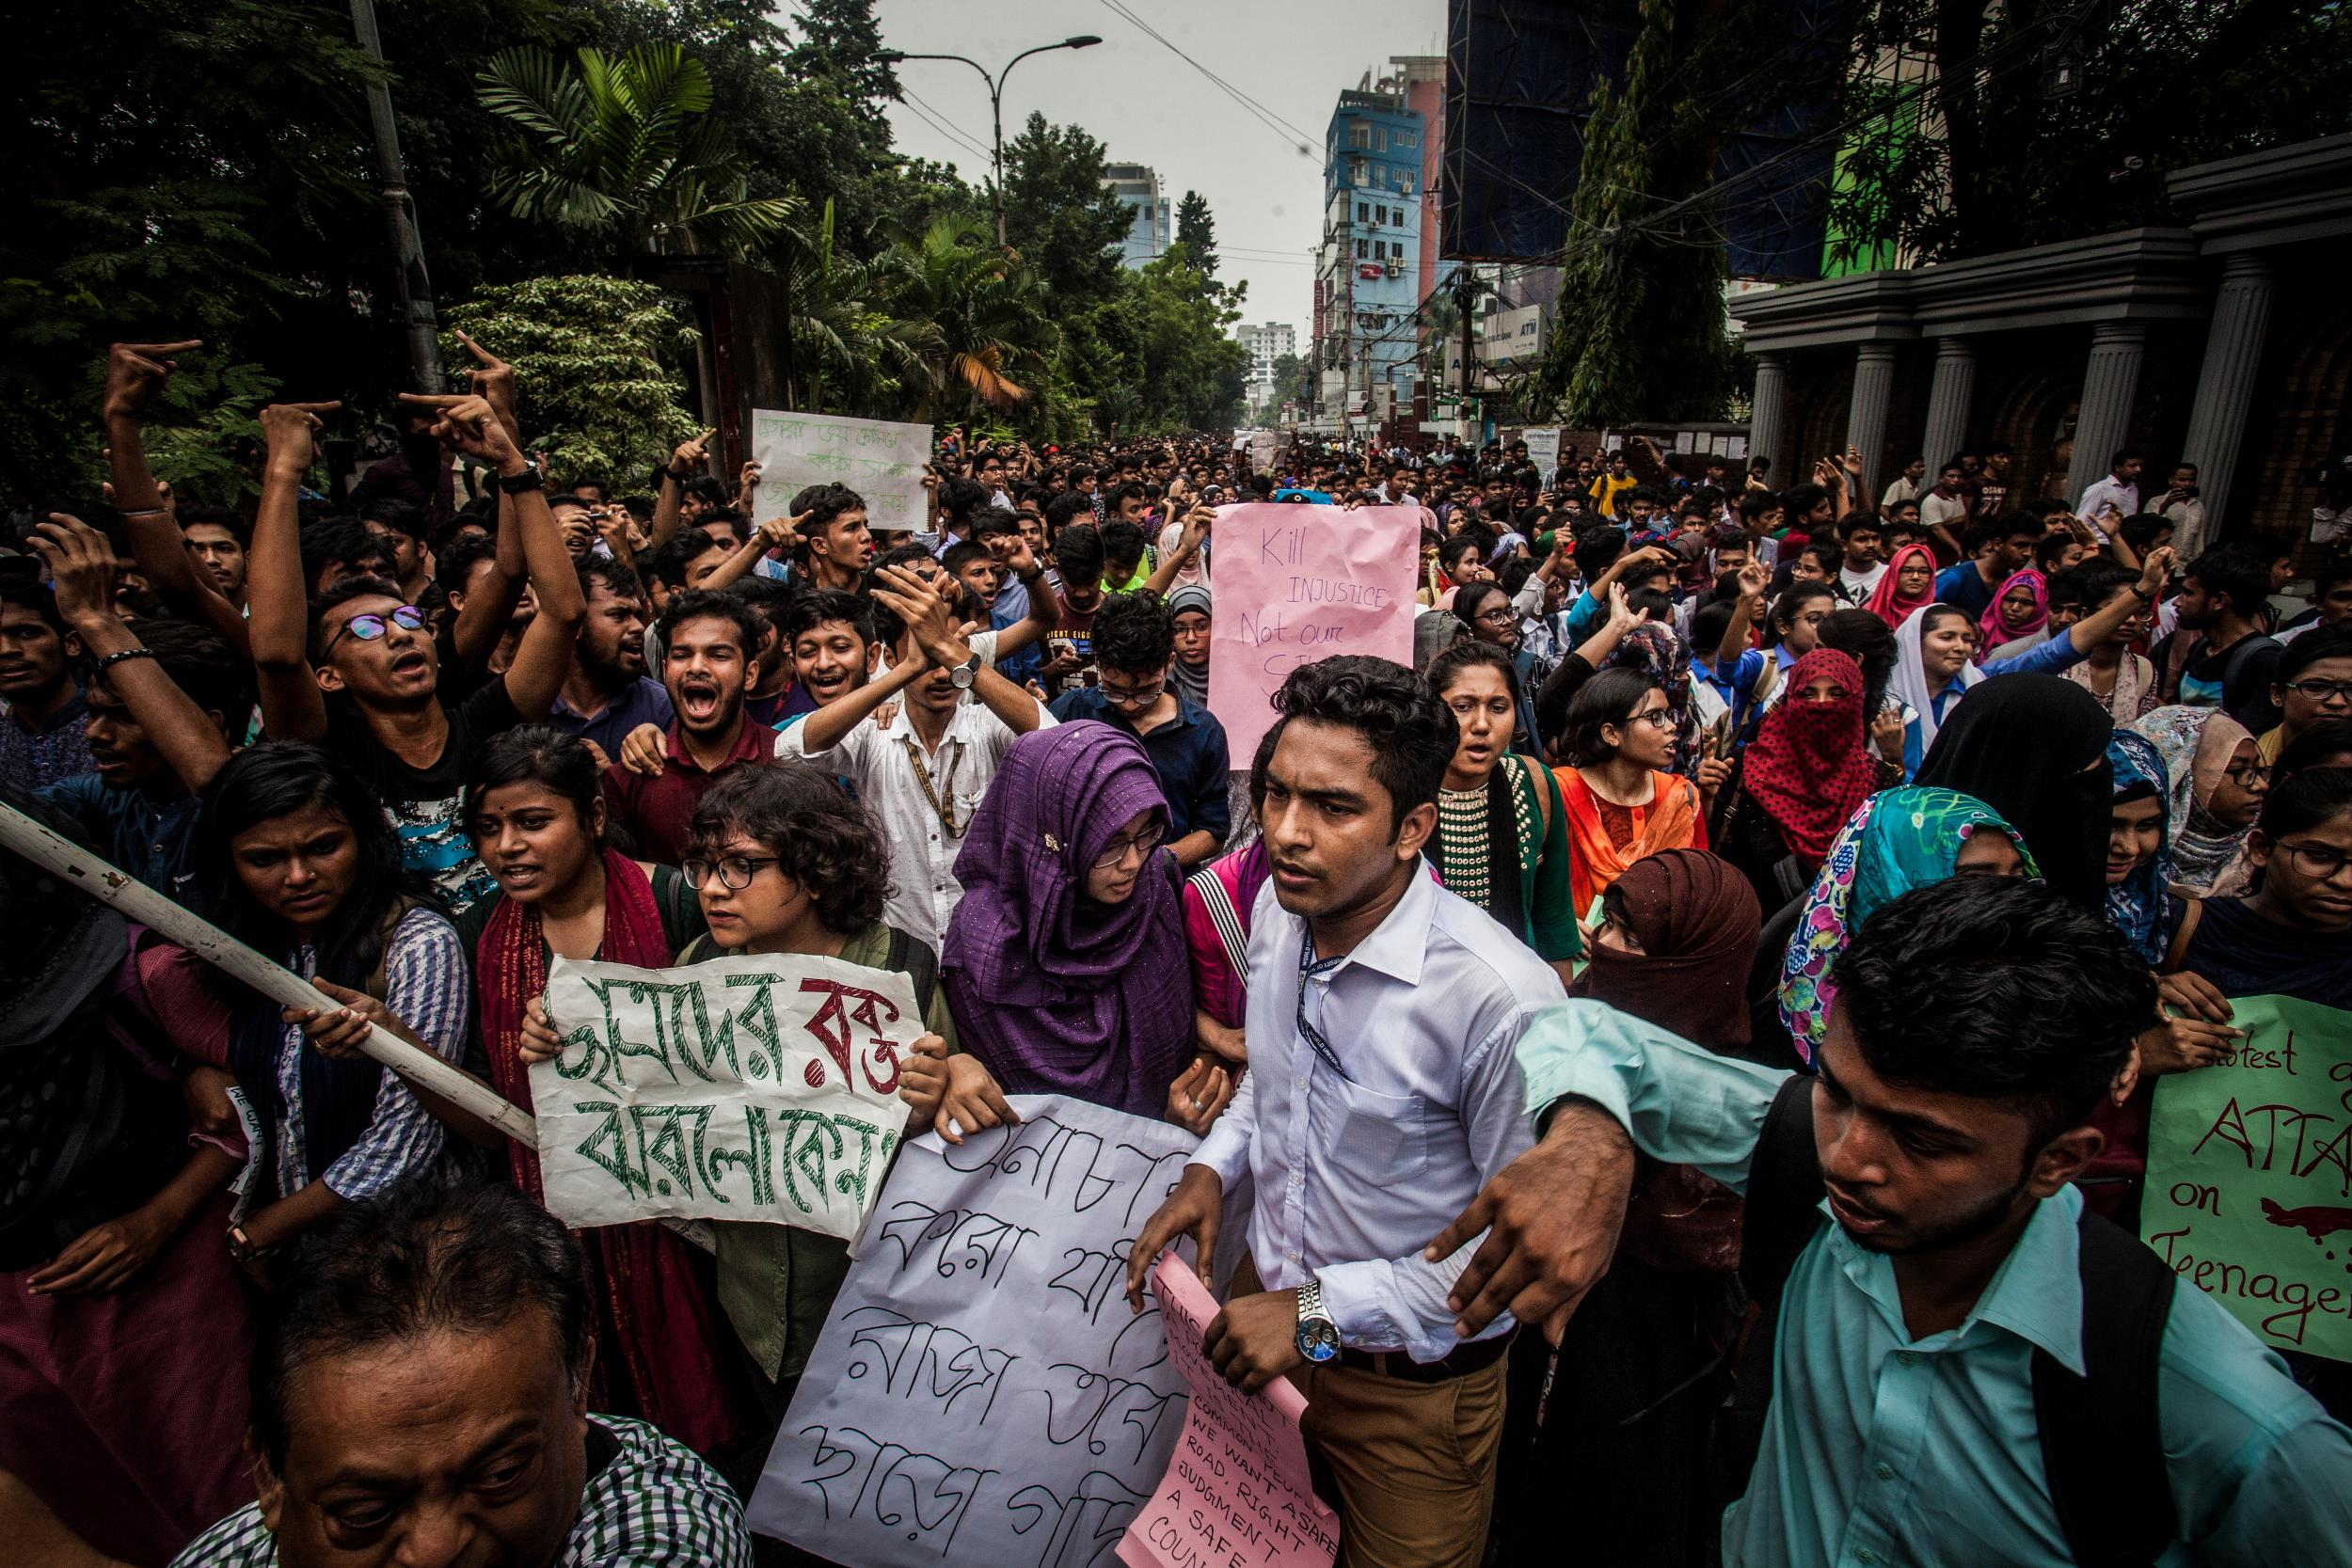 Dhaka - latest news, breaking stories and comment - The Independent